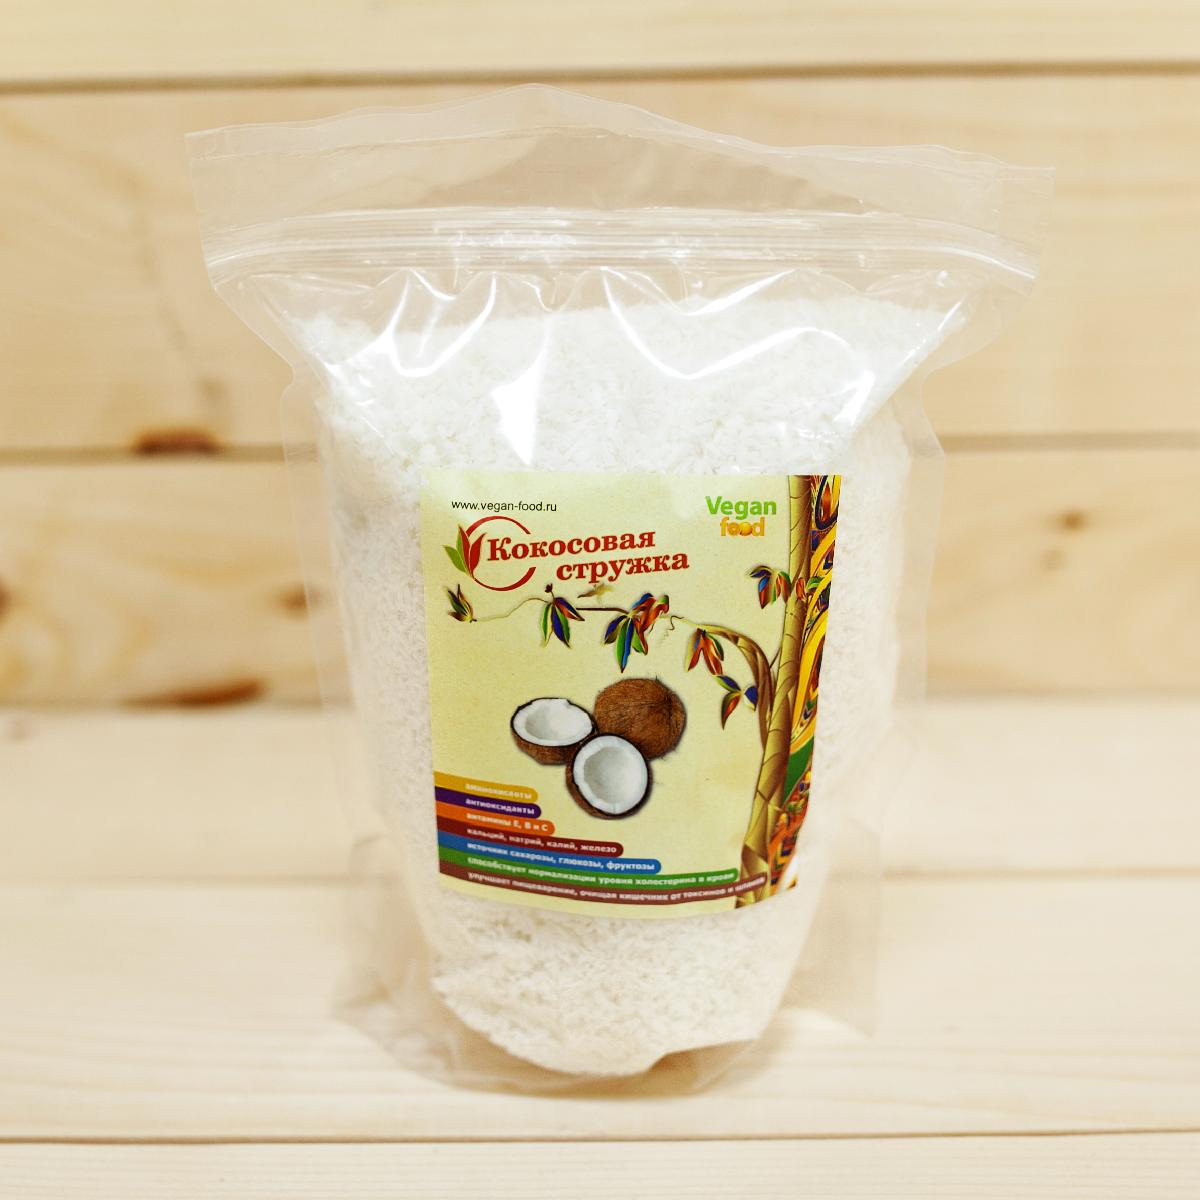 Кокосовая стружка Vegan Food, 300гр/Coconut Chips Vegan Food, 300g